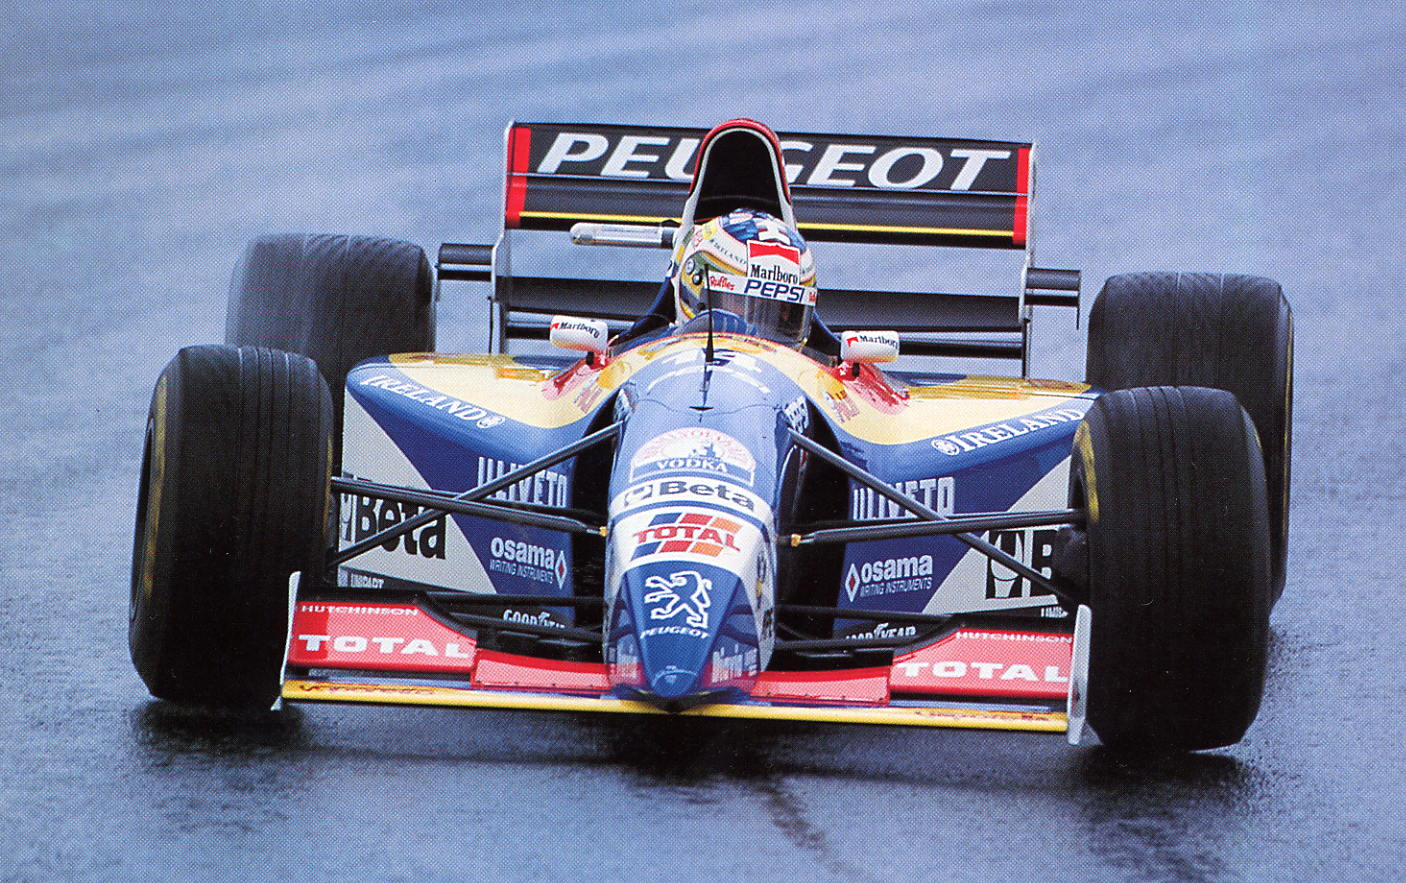 Temporada de Formula 1 em 1995, Barrichello by blogdaggoo.blogspot.com